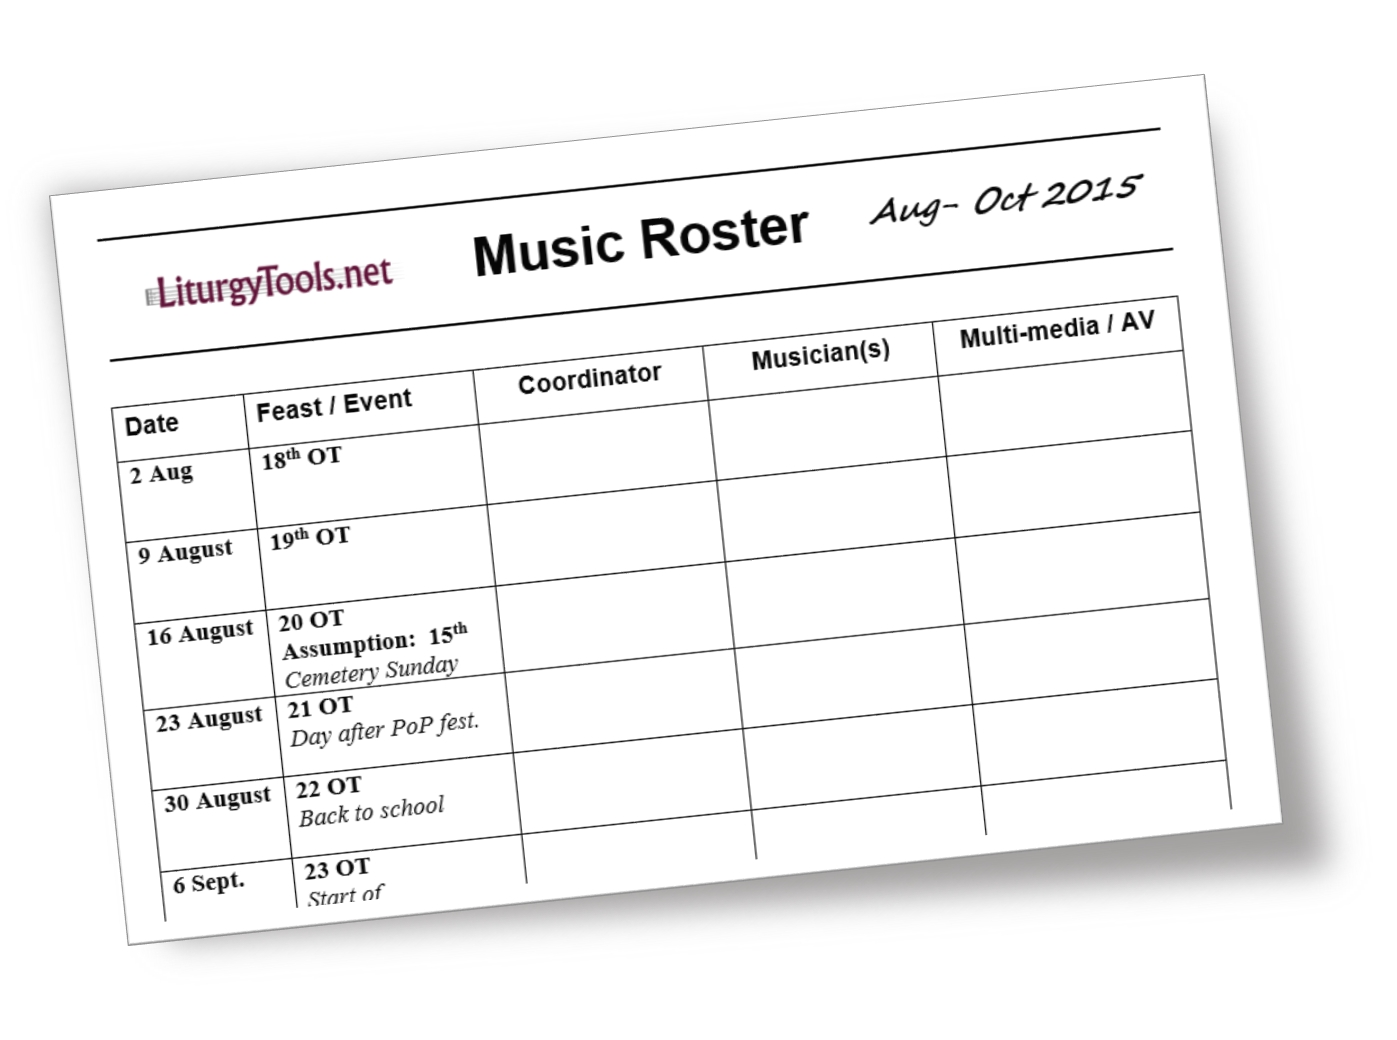 Liturgytools: Blank Template For A Church Music Roster